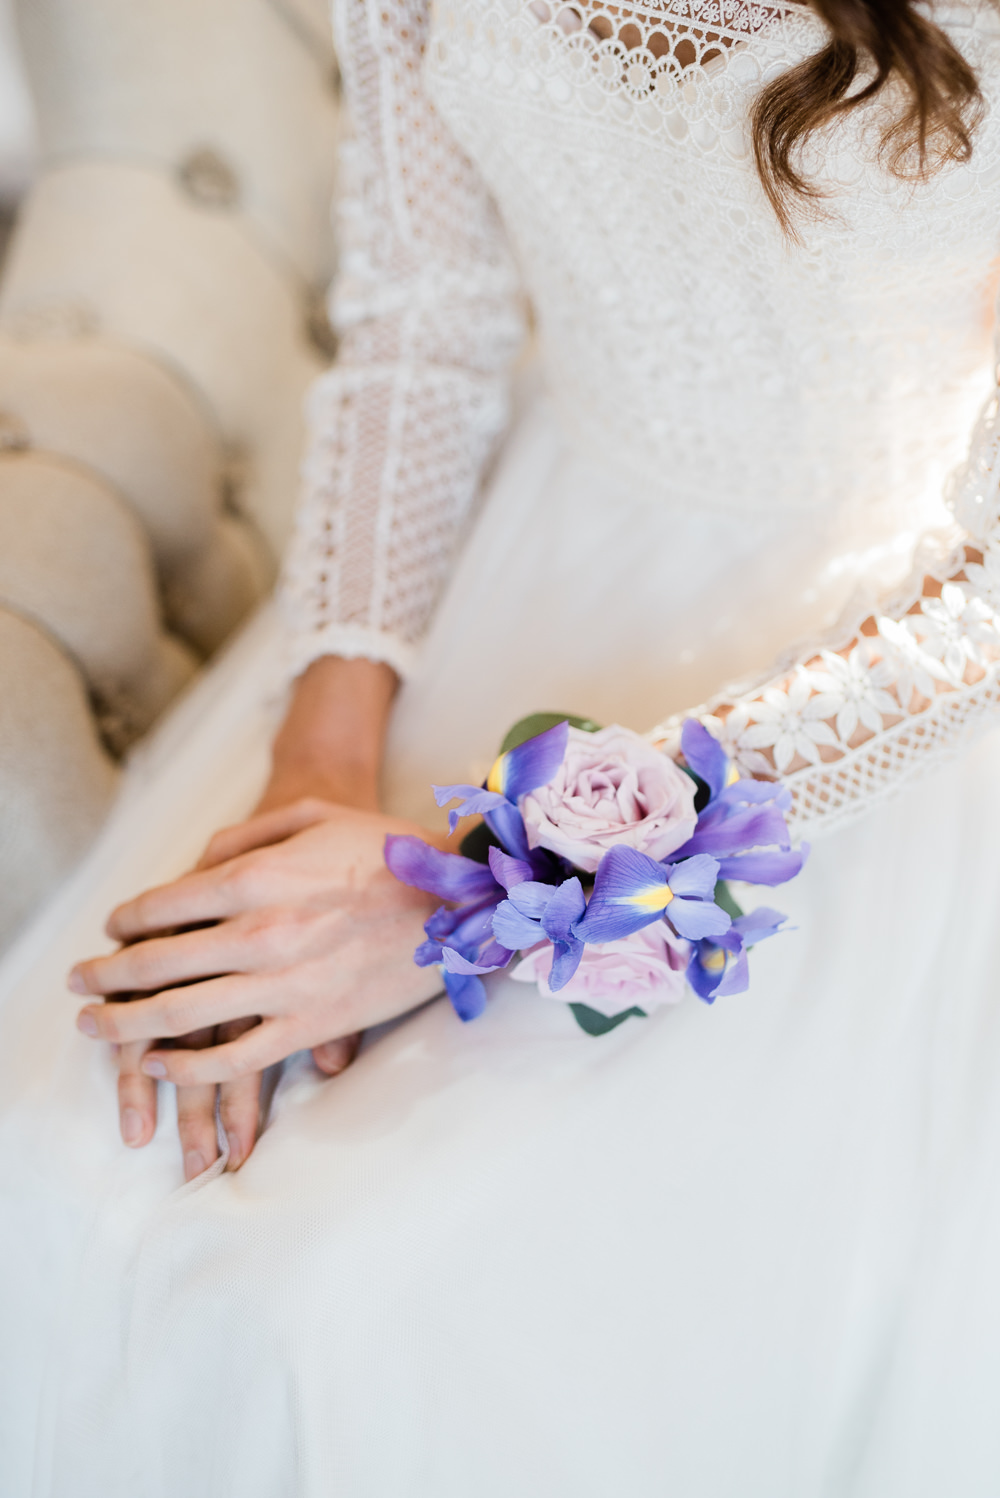 Wrist Corsage Flowers Bride Bridal Ultra Violet Wedding Moon Gate Flower Arch Captured by Katrina Photography